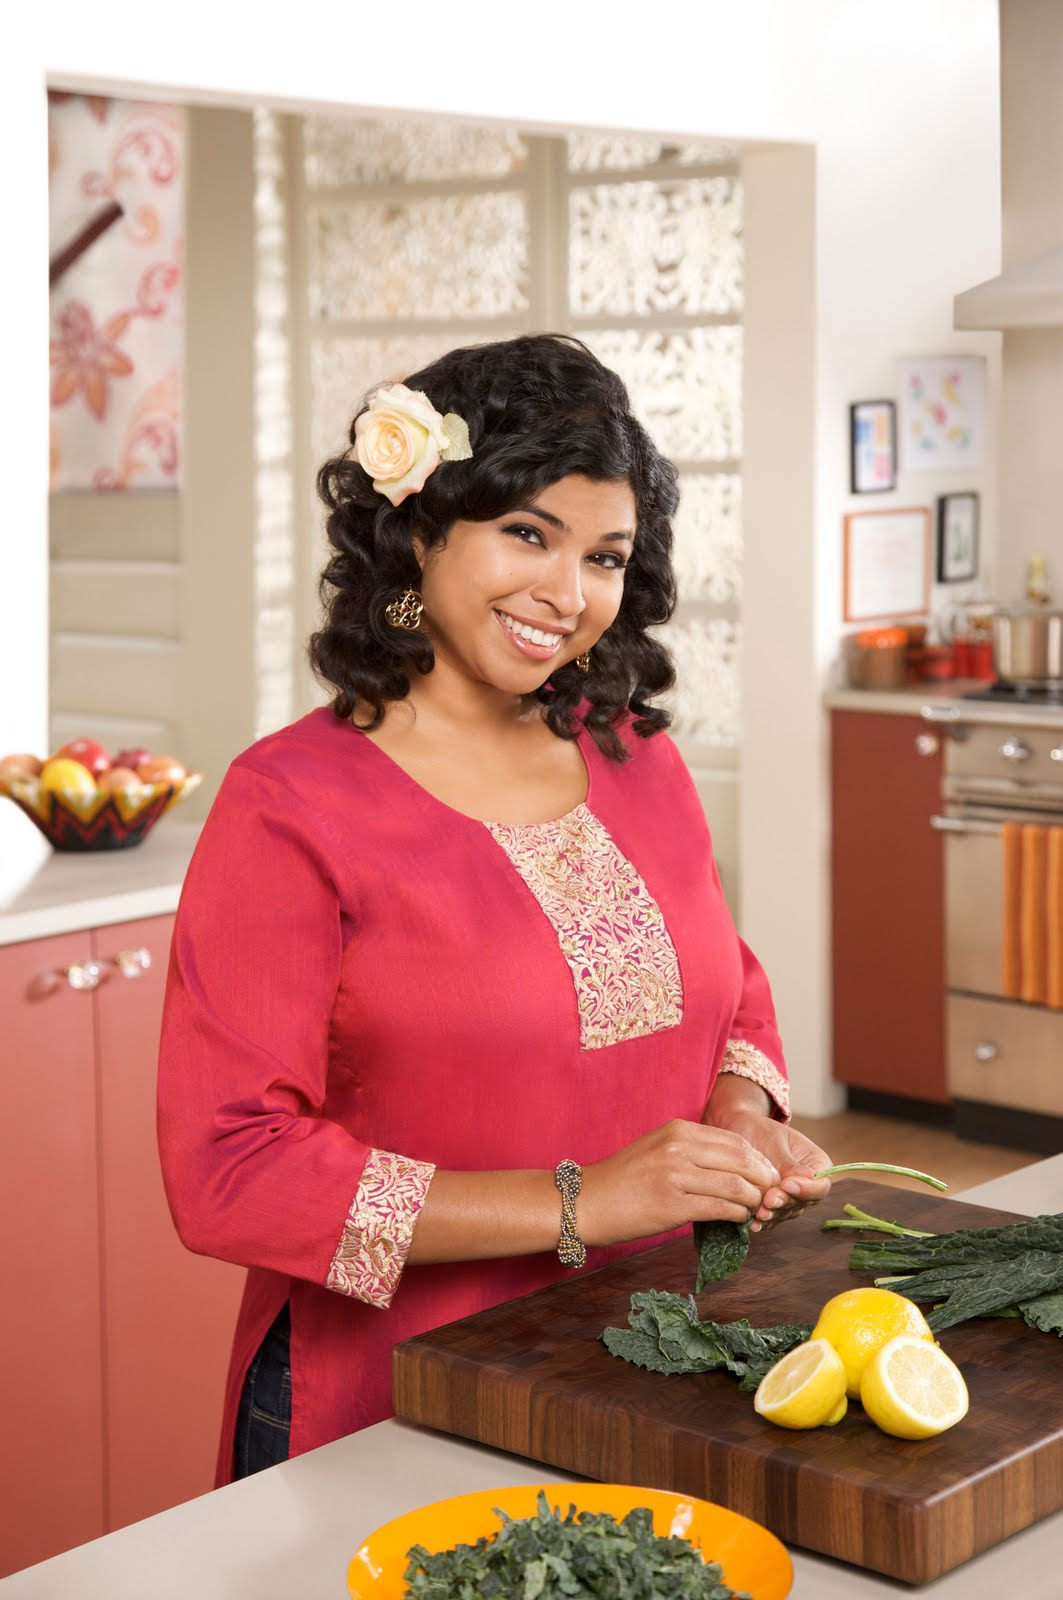 Aarti Sequeira Recipes Food Tv my interview with aarti, the next food network star | recipe